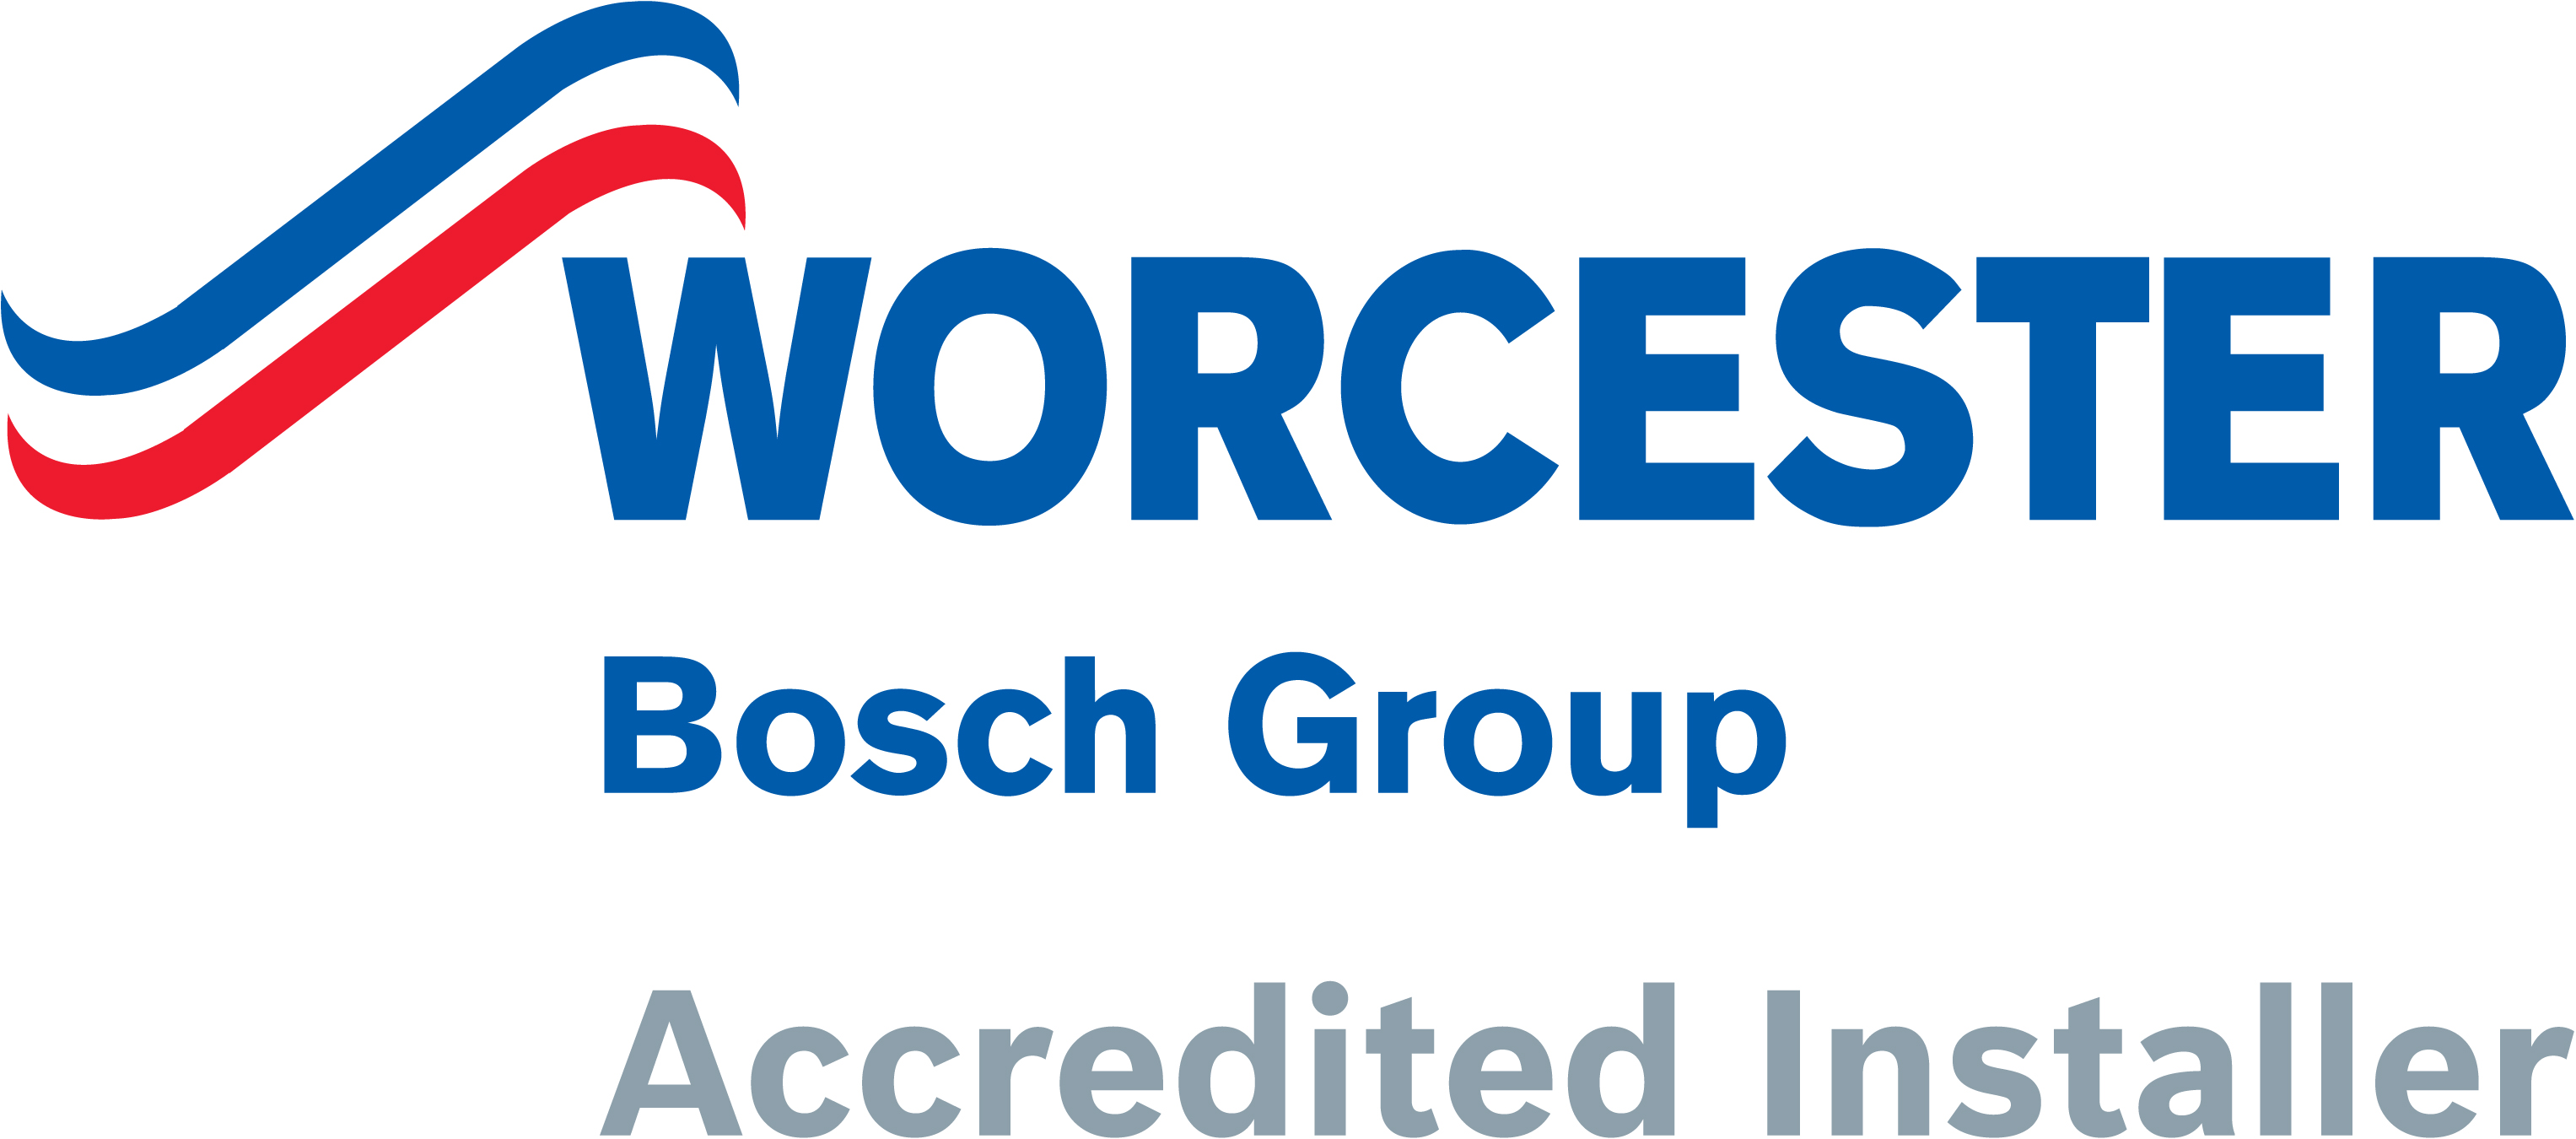 Worchester Accredited Installer